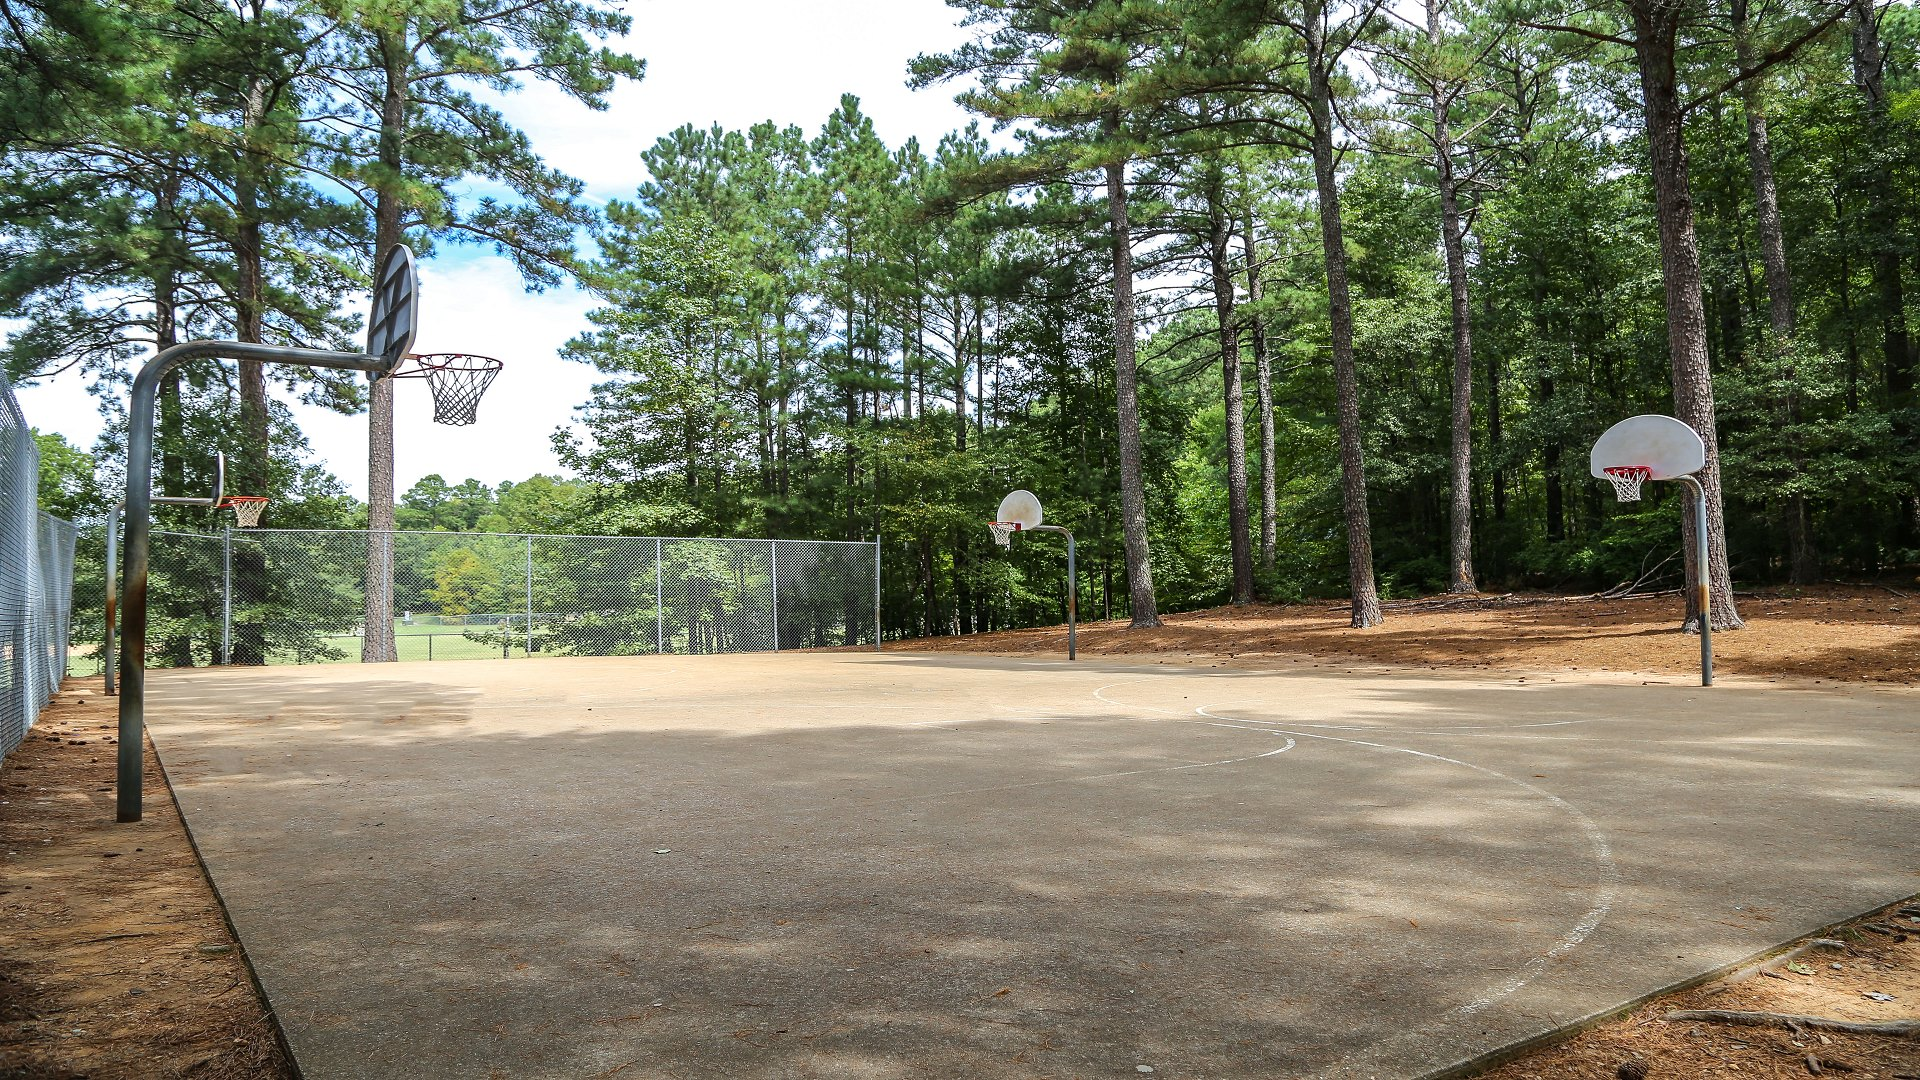 Concrete outdoor basketball court with four hoops at Biltmore Hills